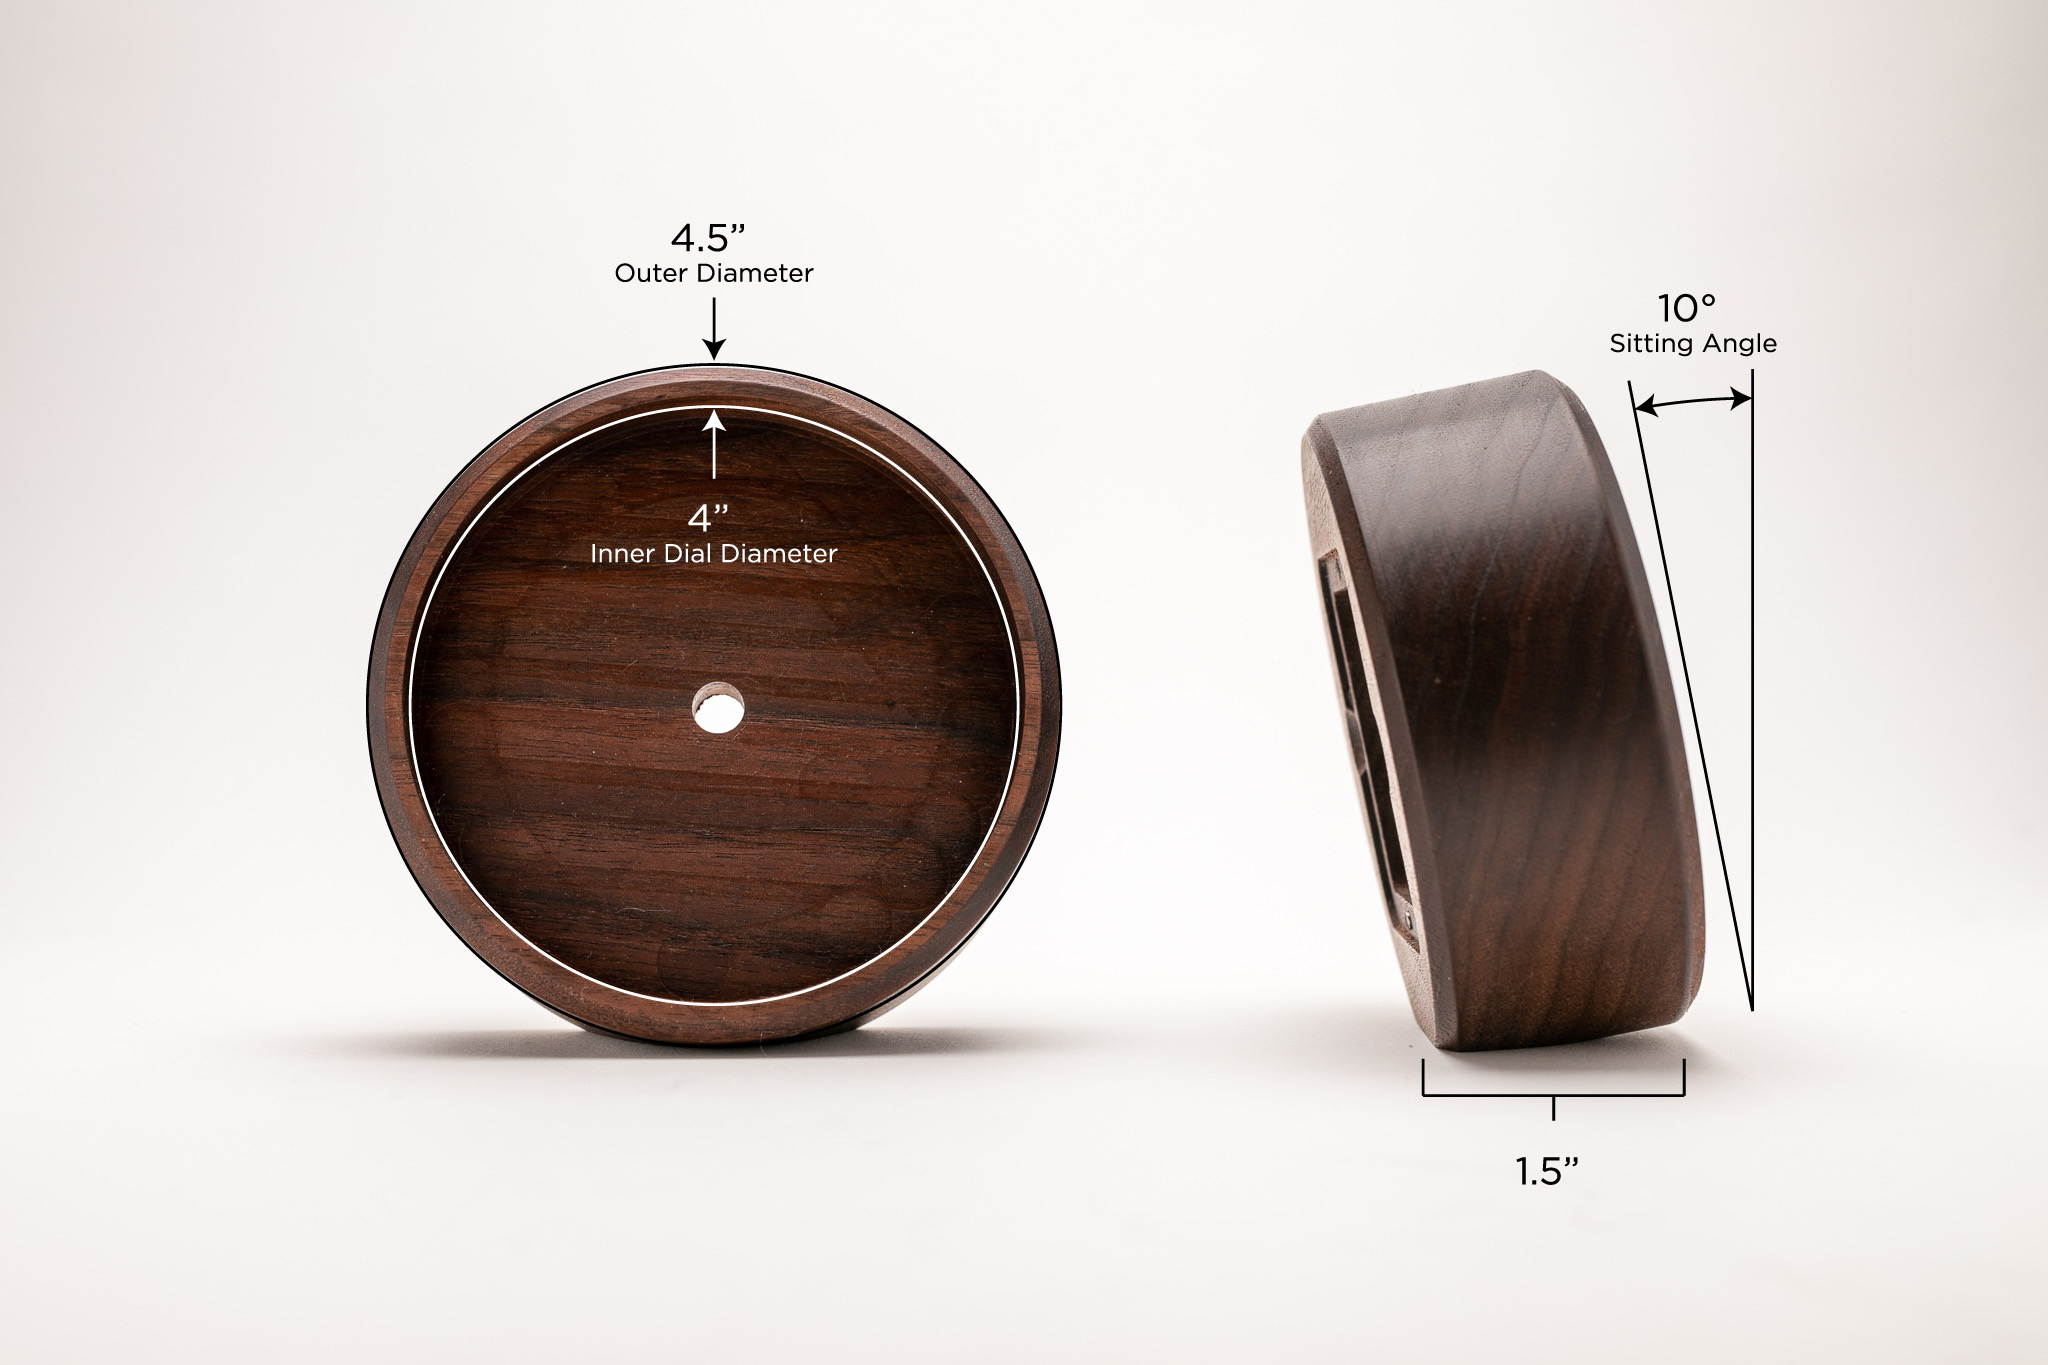 THE ANGLE - –PRECISE 10° ANGLE–Though it's round, our Desk Clock doesn't roll. On the bottom of the walnut body, there's a precise 10 degree angle carved into the wood. The Desk Clock sits perfectly flat and facing up at you every time.